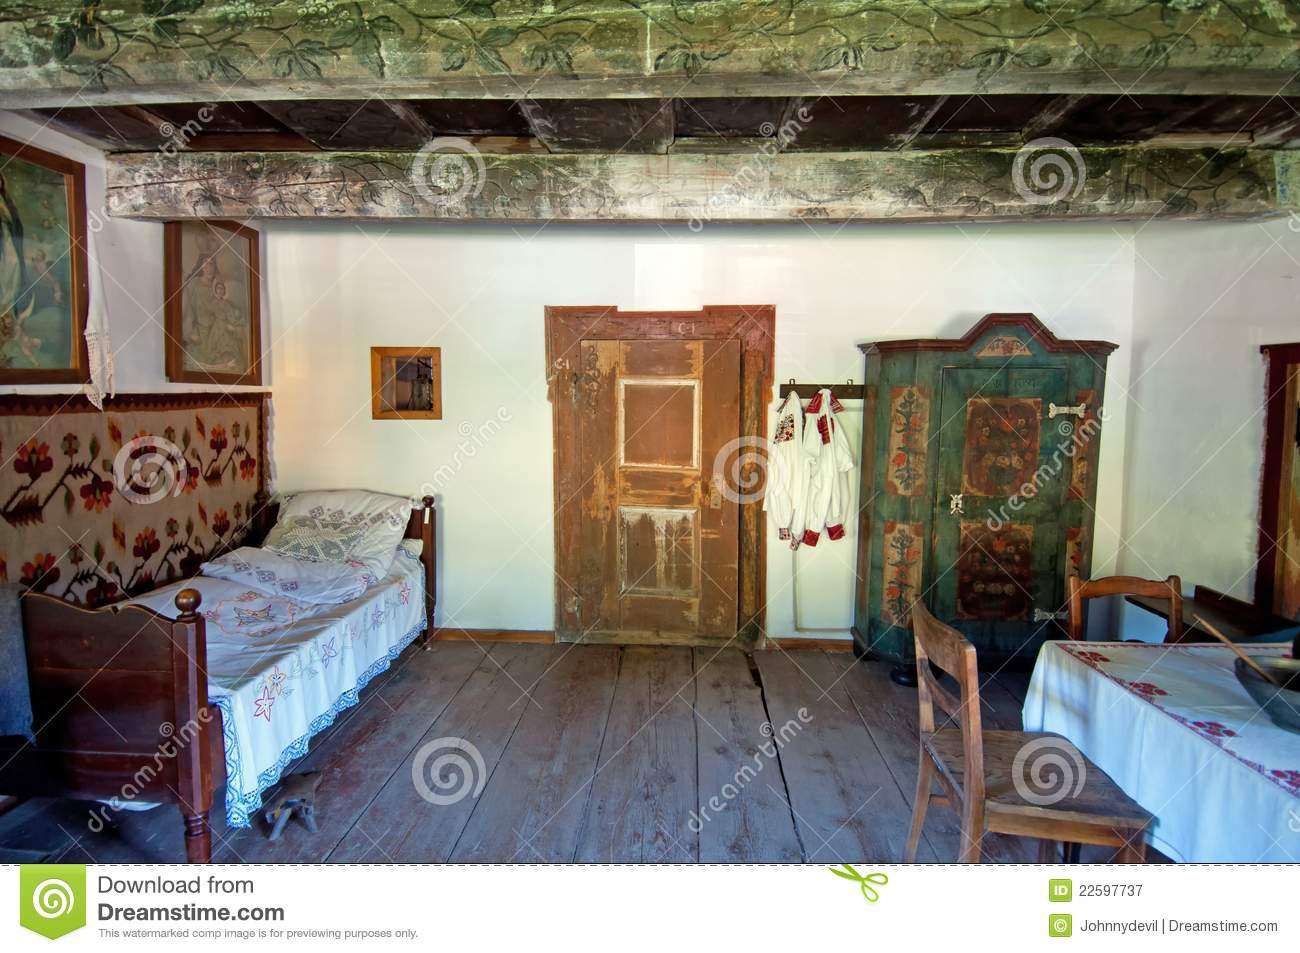 old wooden house interior royalty free stock photography image 22597737. Black Bedroom Furniture Sets. Home Design Ideas